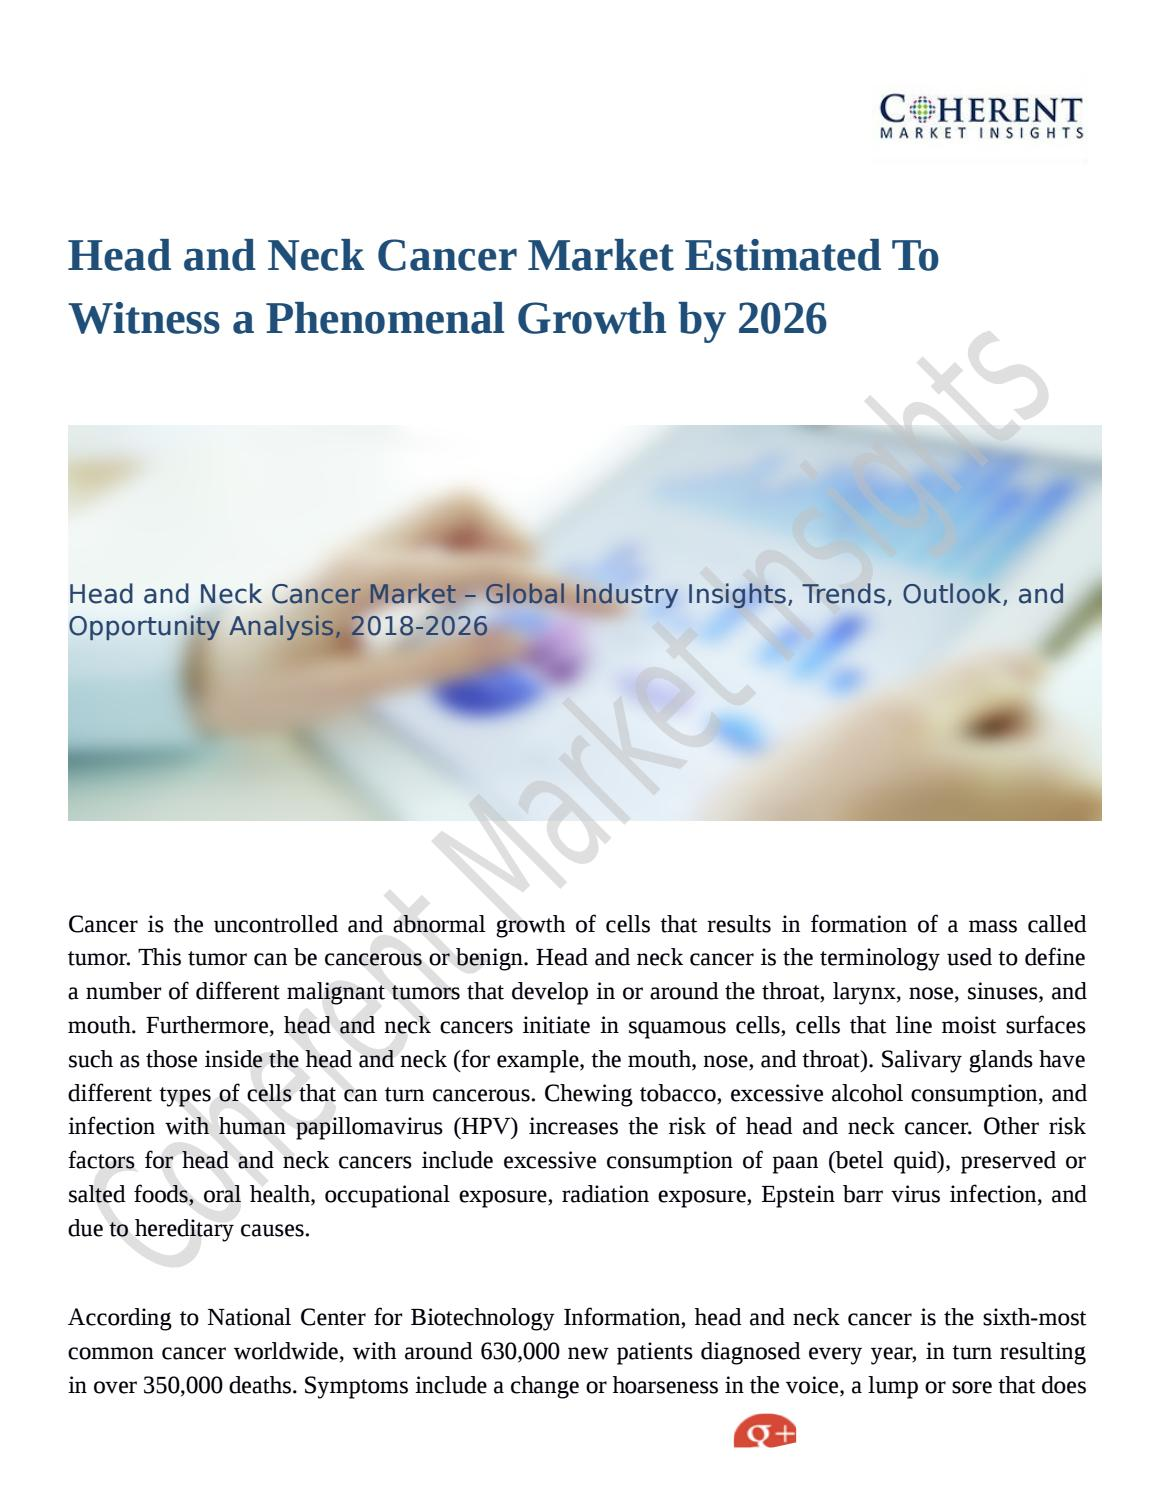 Head and Neck Cancer Market To See Incredible Growth By 2026